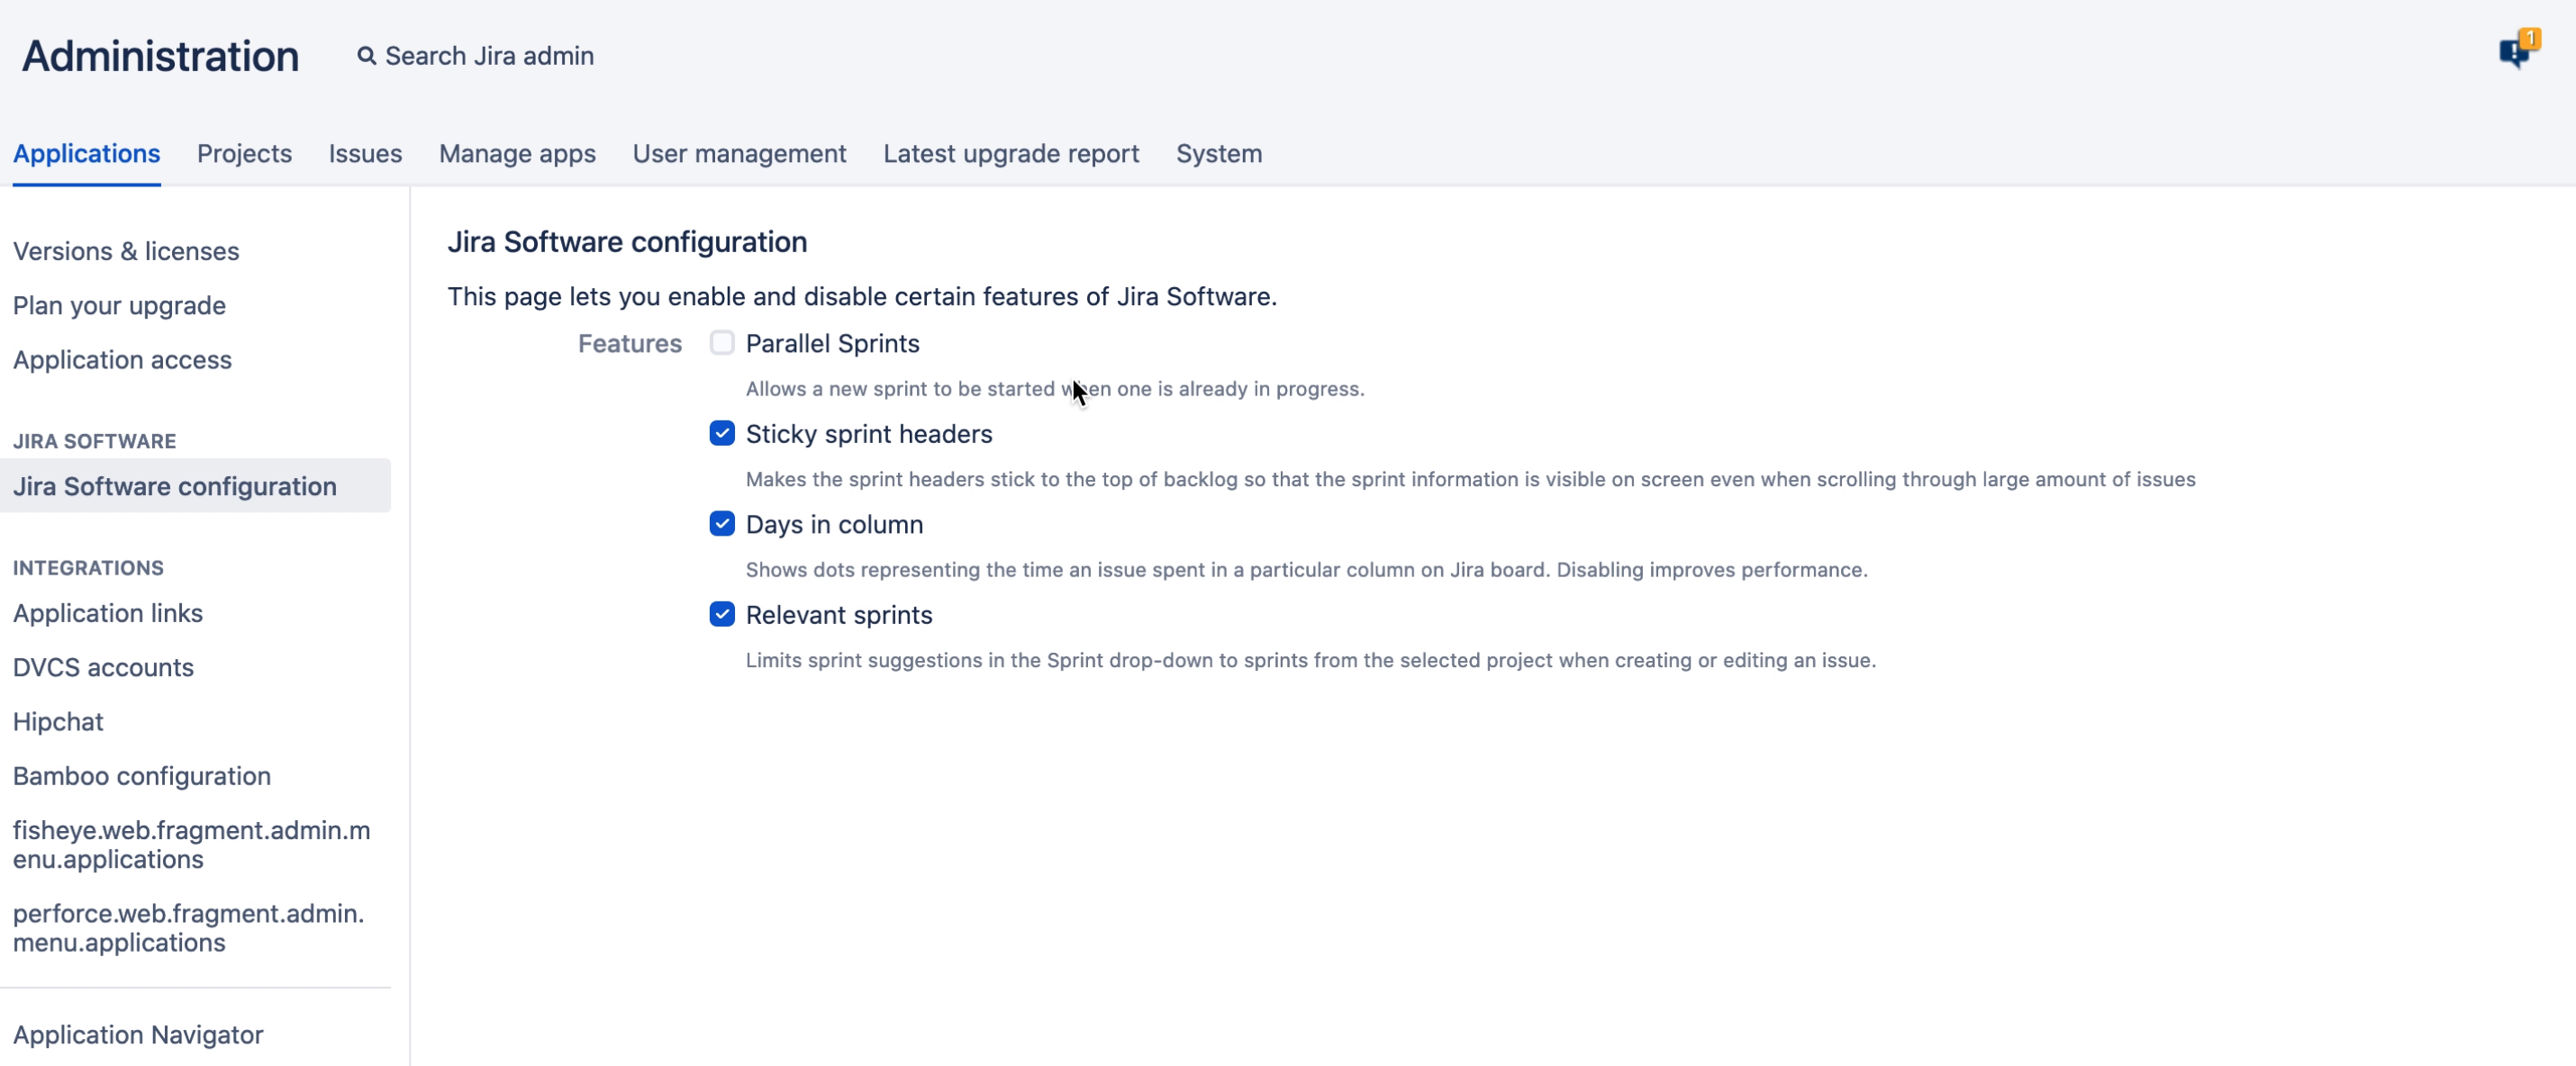 Jira Software configuration in the administration console.